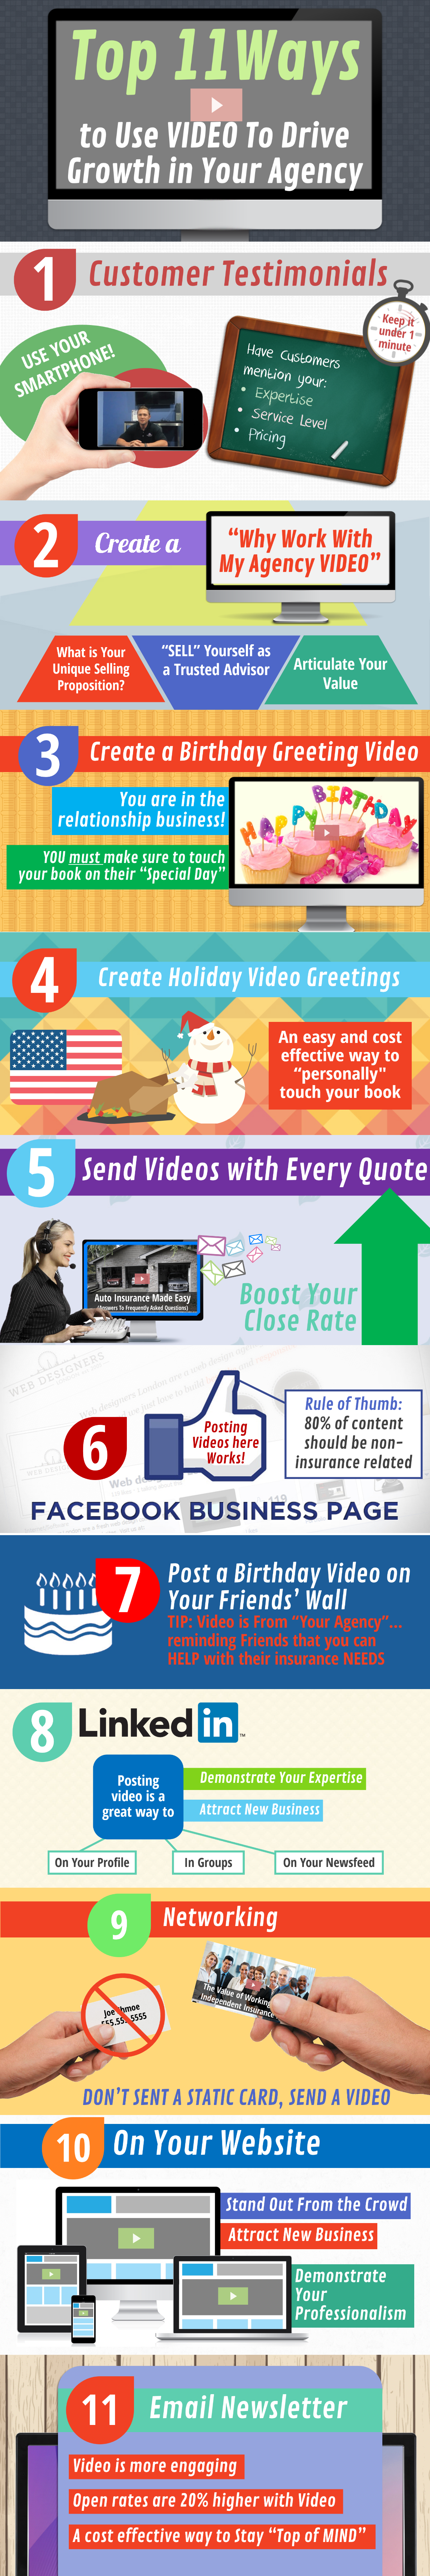 Top 11 Ways Use Video Drive Gr